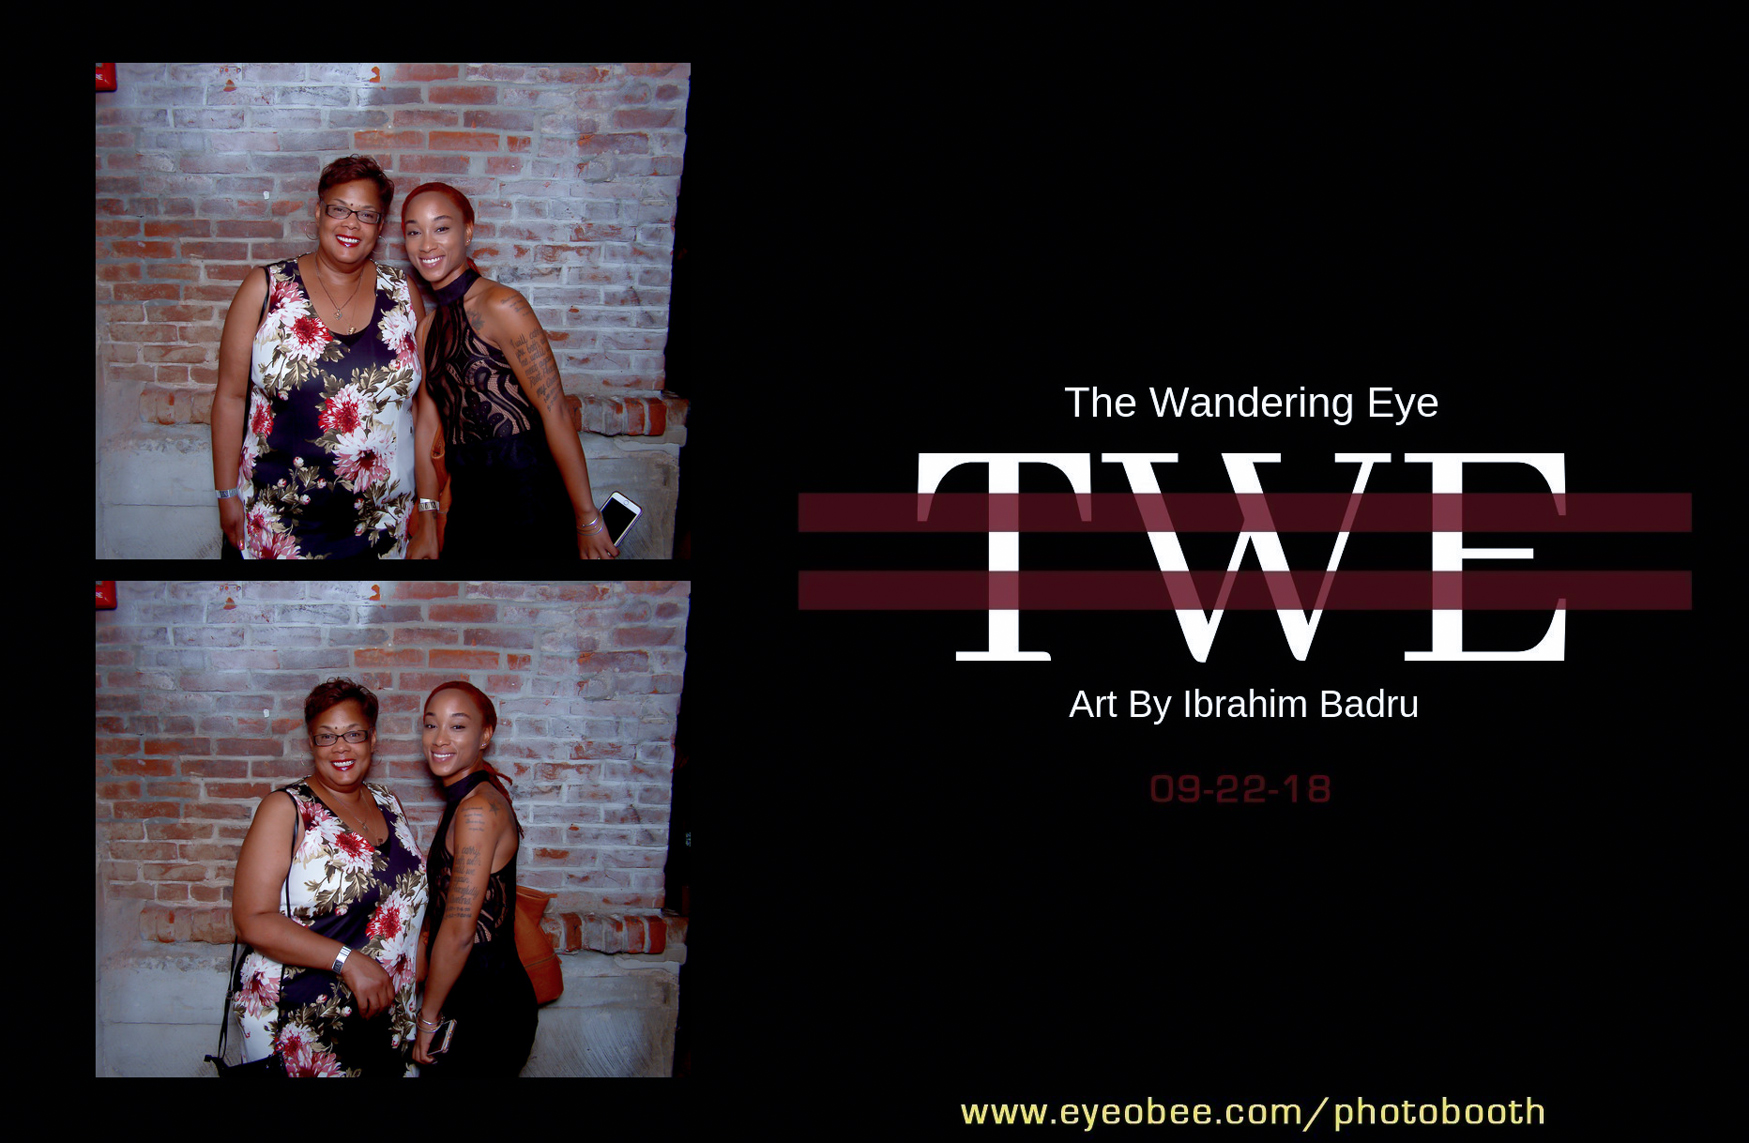 eyeobee PhotoBooth The Wandering eye art by Ibrahim Badru-0-44.jpg